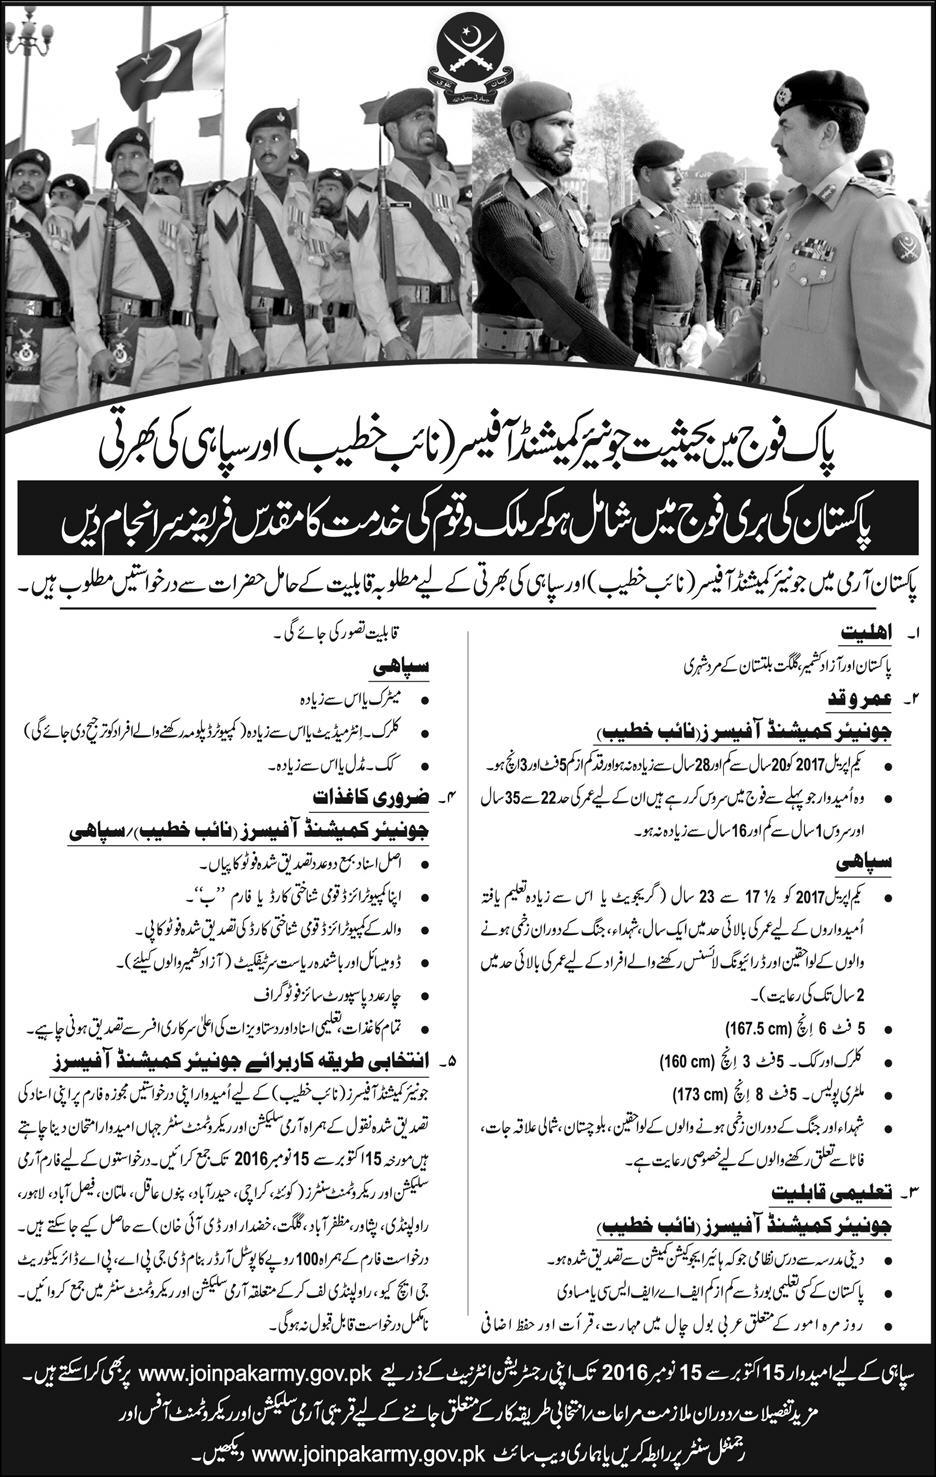 Join Pak Army As Junior Commissioned Officer And Soldier 2016 Registration Online